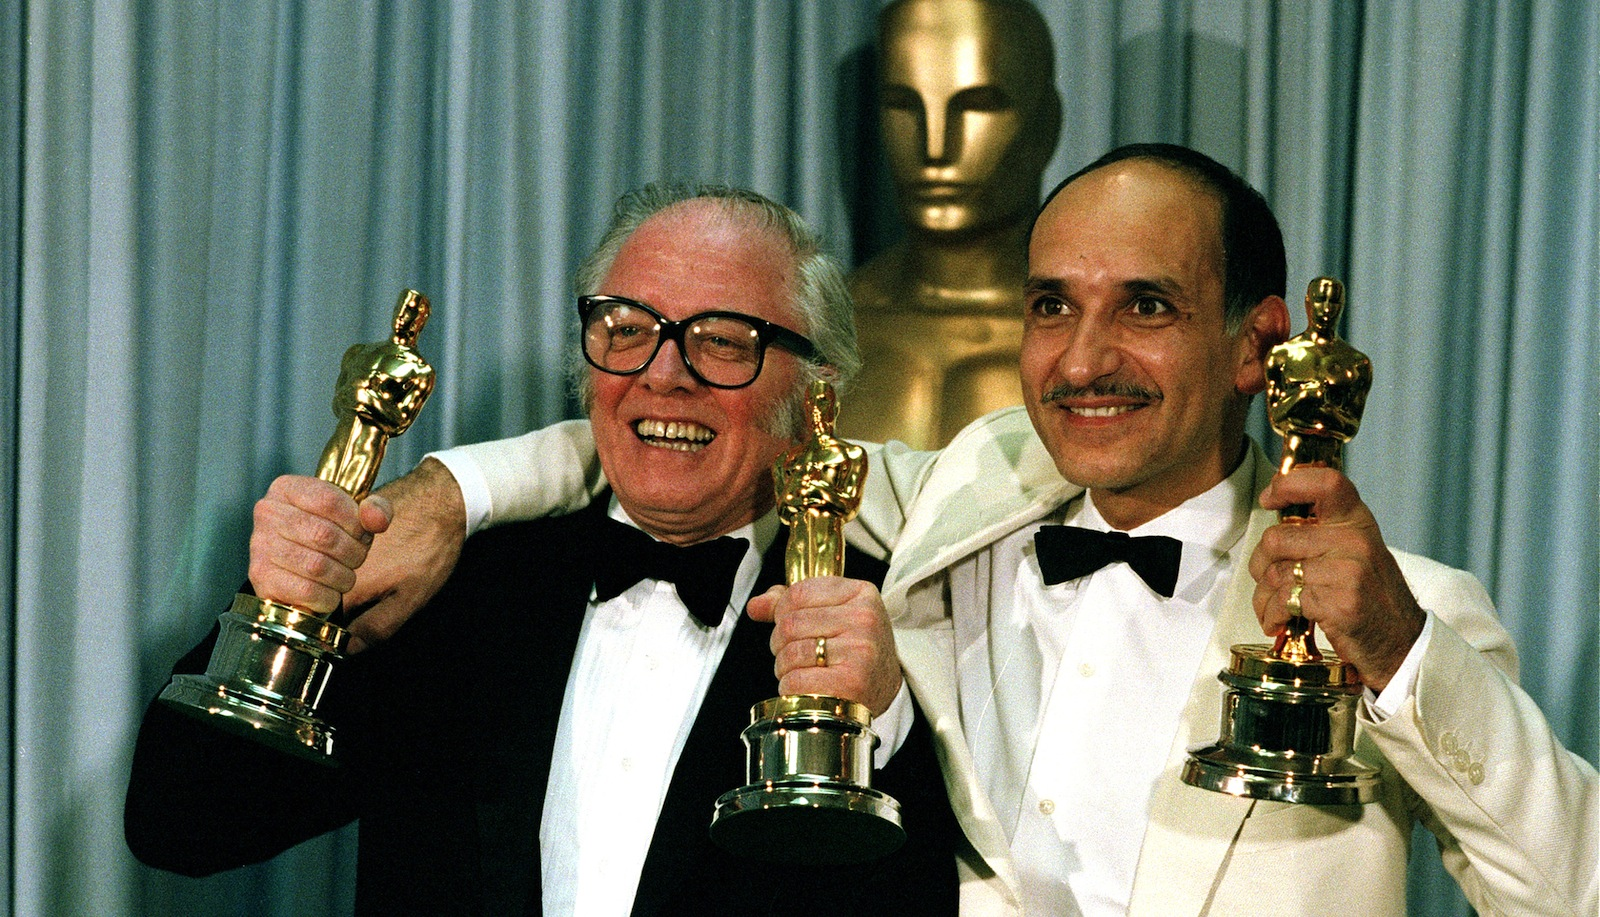 """Director Richard Attenborough, left, and actor Ben Kingsley pose with their Oscars at the 55th annual Academy Awards in Hollywood, Calif., on April 11, 1983. Attenborough won best director and best picture for """"Gandhi,"""" and Kingsley won best actor for his portrayal of the title role in the drama. (AP Photo/Reed Saxon)"""